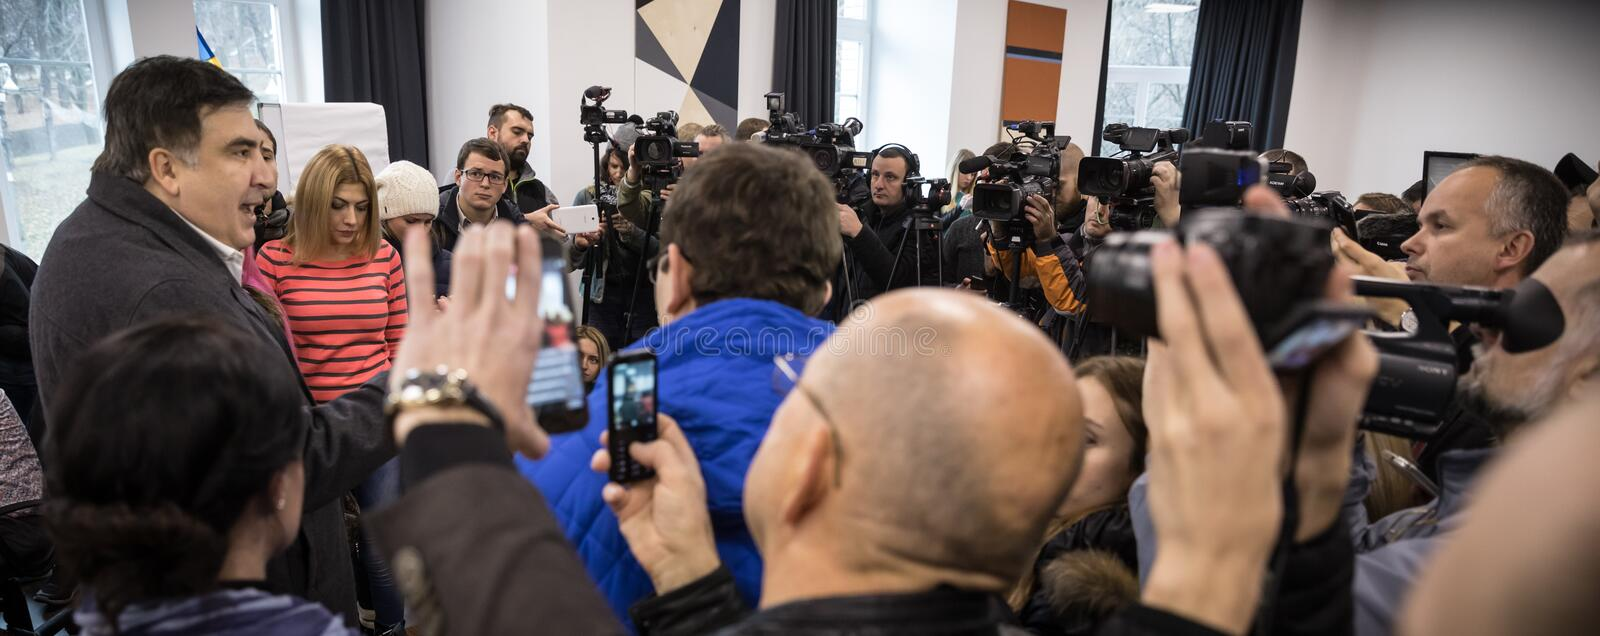 Mikhail Saakashvili on briefing for press. KIEV, UKRAINE - Nov 27, 2016: Briefing for the press after the meeting organized by the politician Mikhail Saakashvili stock images